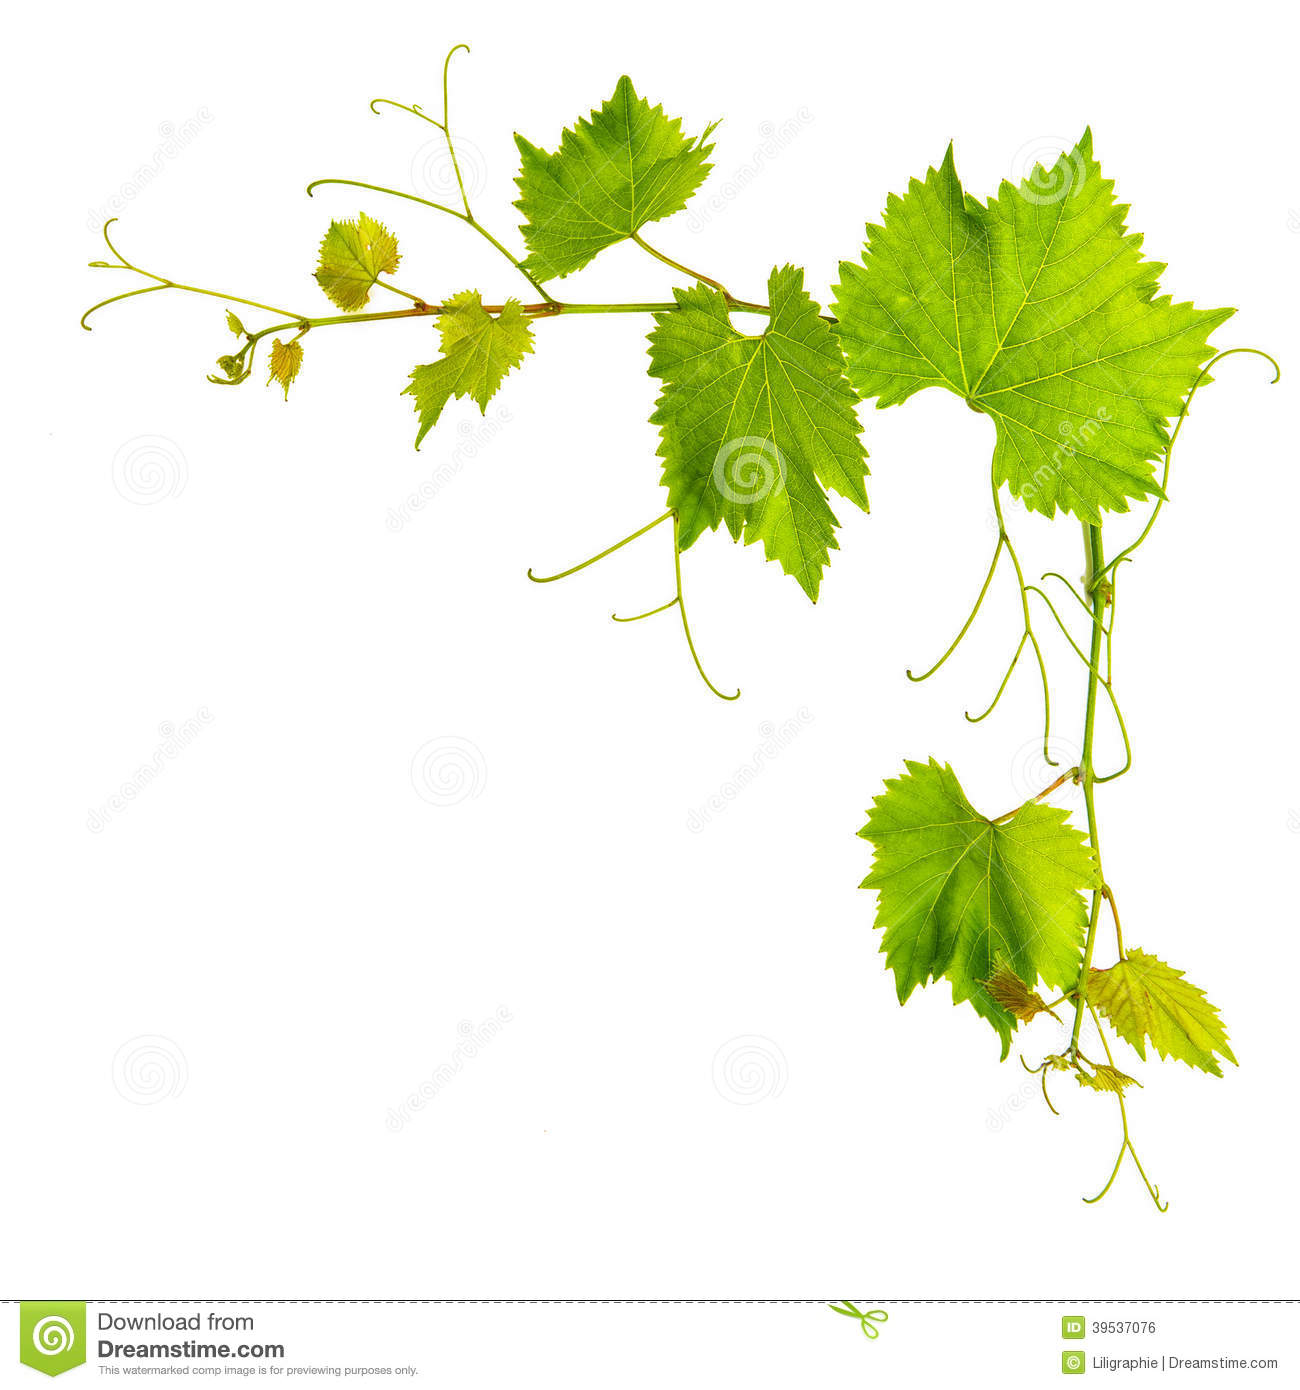 Grapevine Leaves Border Isolated On White Stock Photo - Image ...